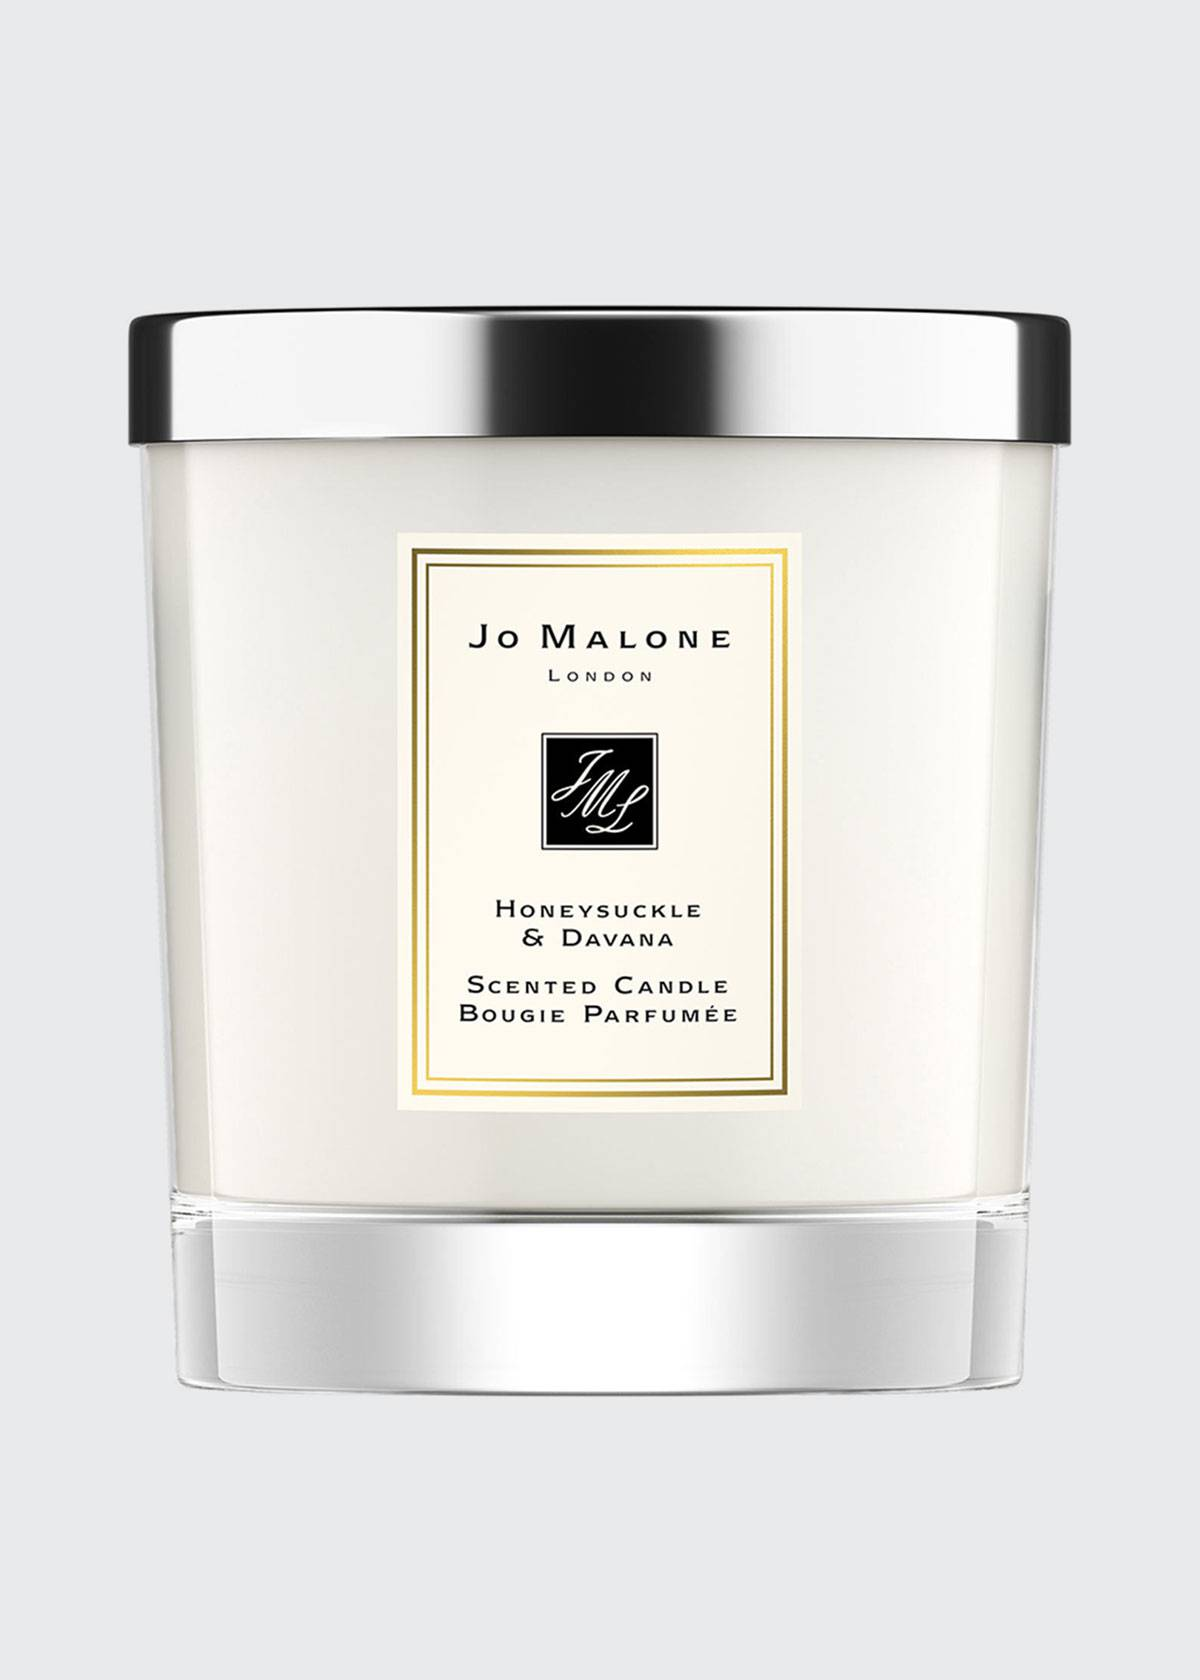 Jo Malone London Honeysuckle & Davana Scented Home Candle  - unisex